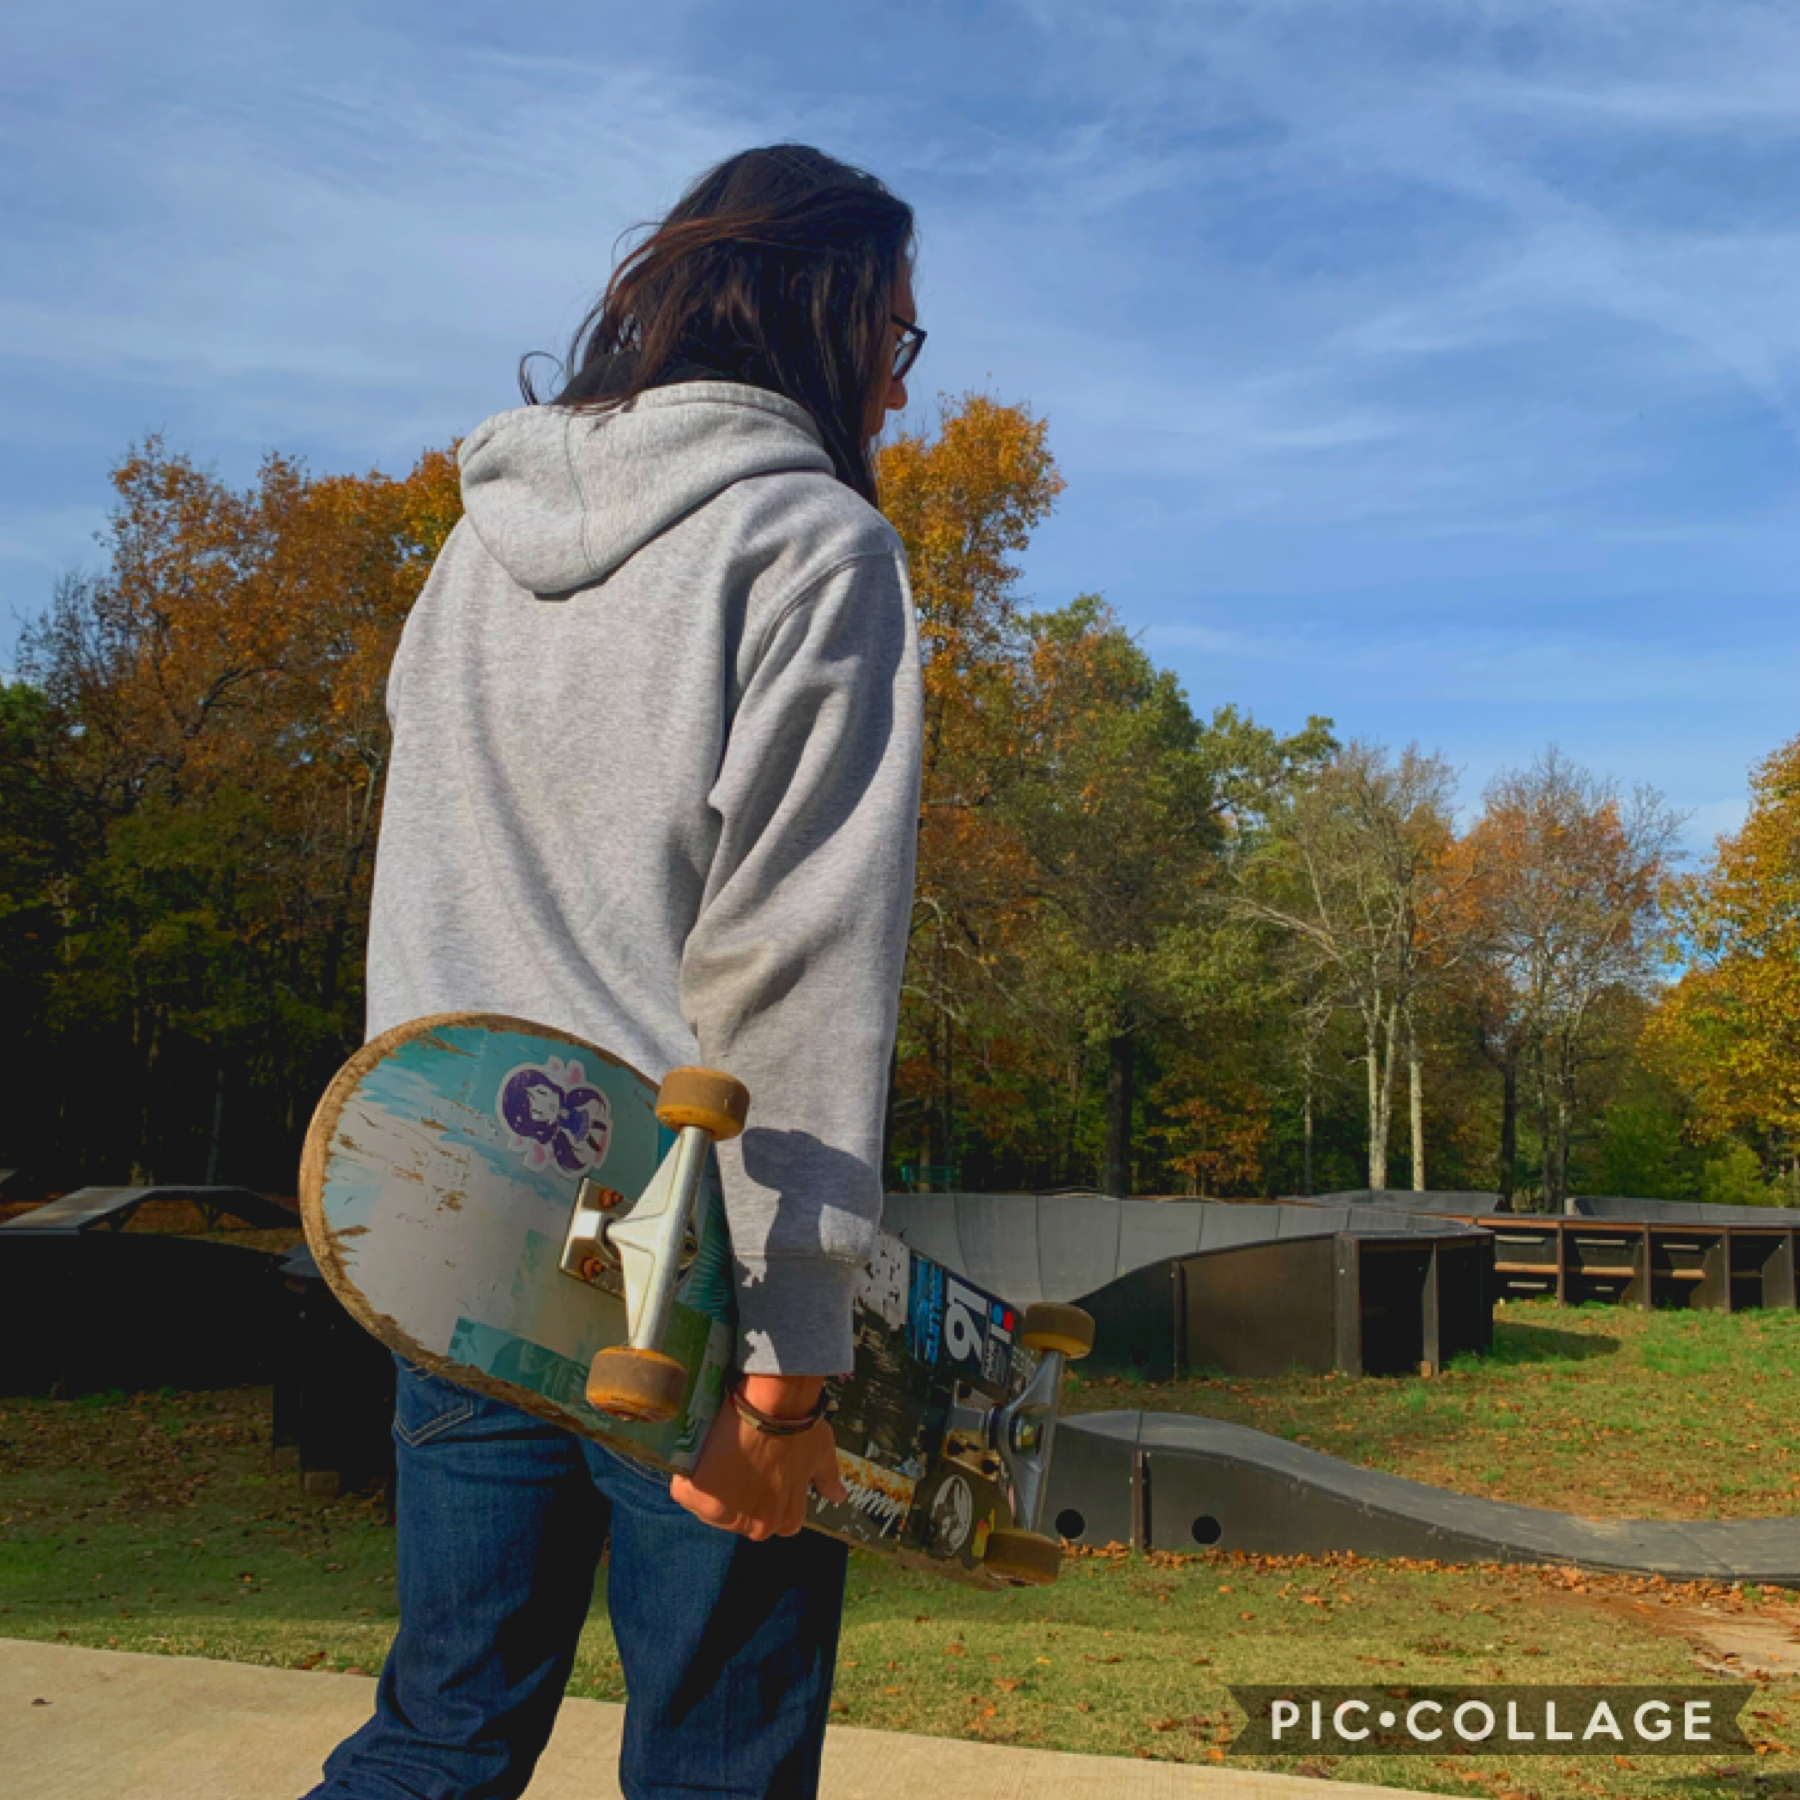 my birthday is this friday yay! i'm getting my paycheck and money from my parents as a gift so i'm gonna be loaded. i'm going to spend some of the money to buy a skateboard because clayton taught me how and it's so much fun:)